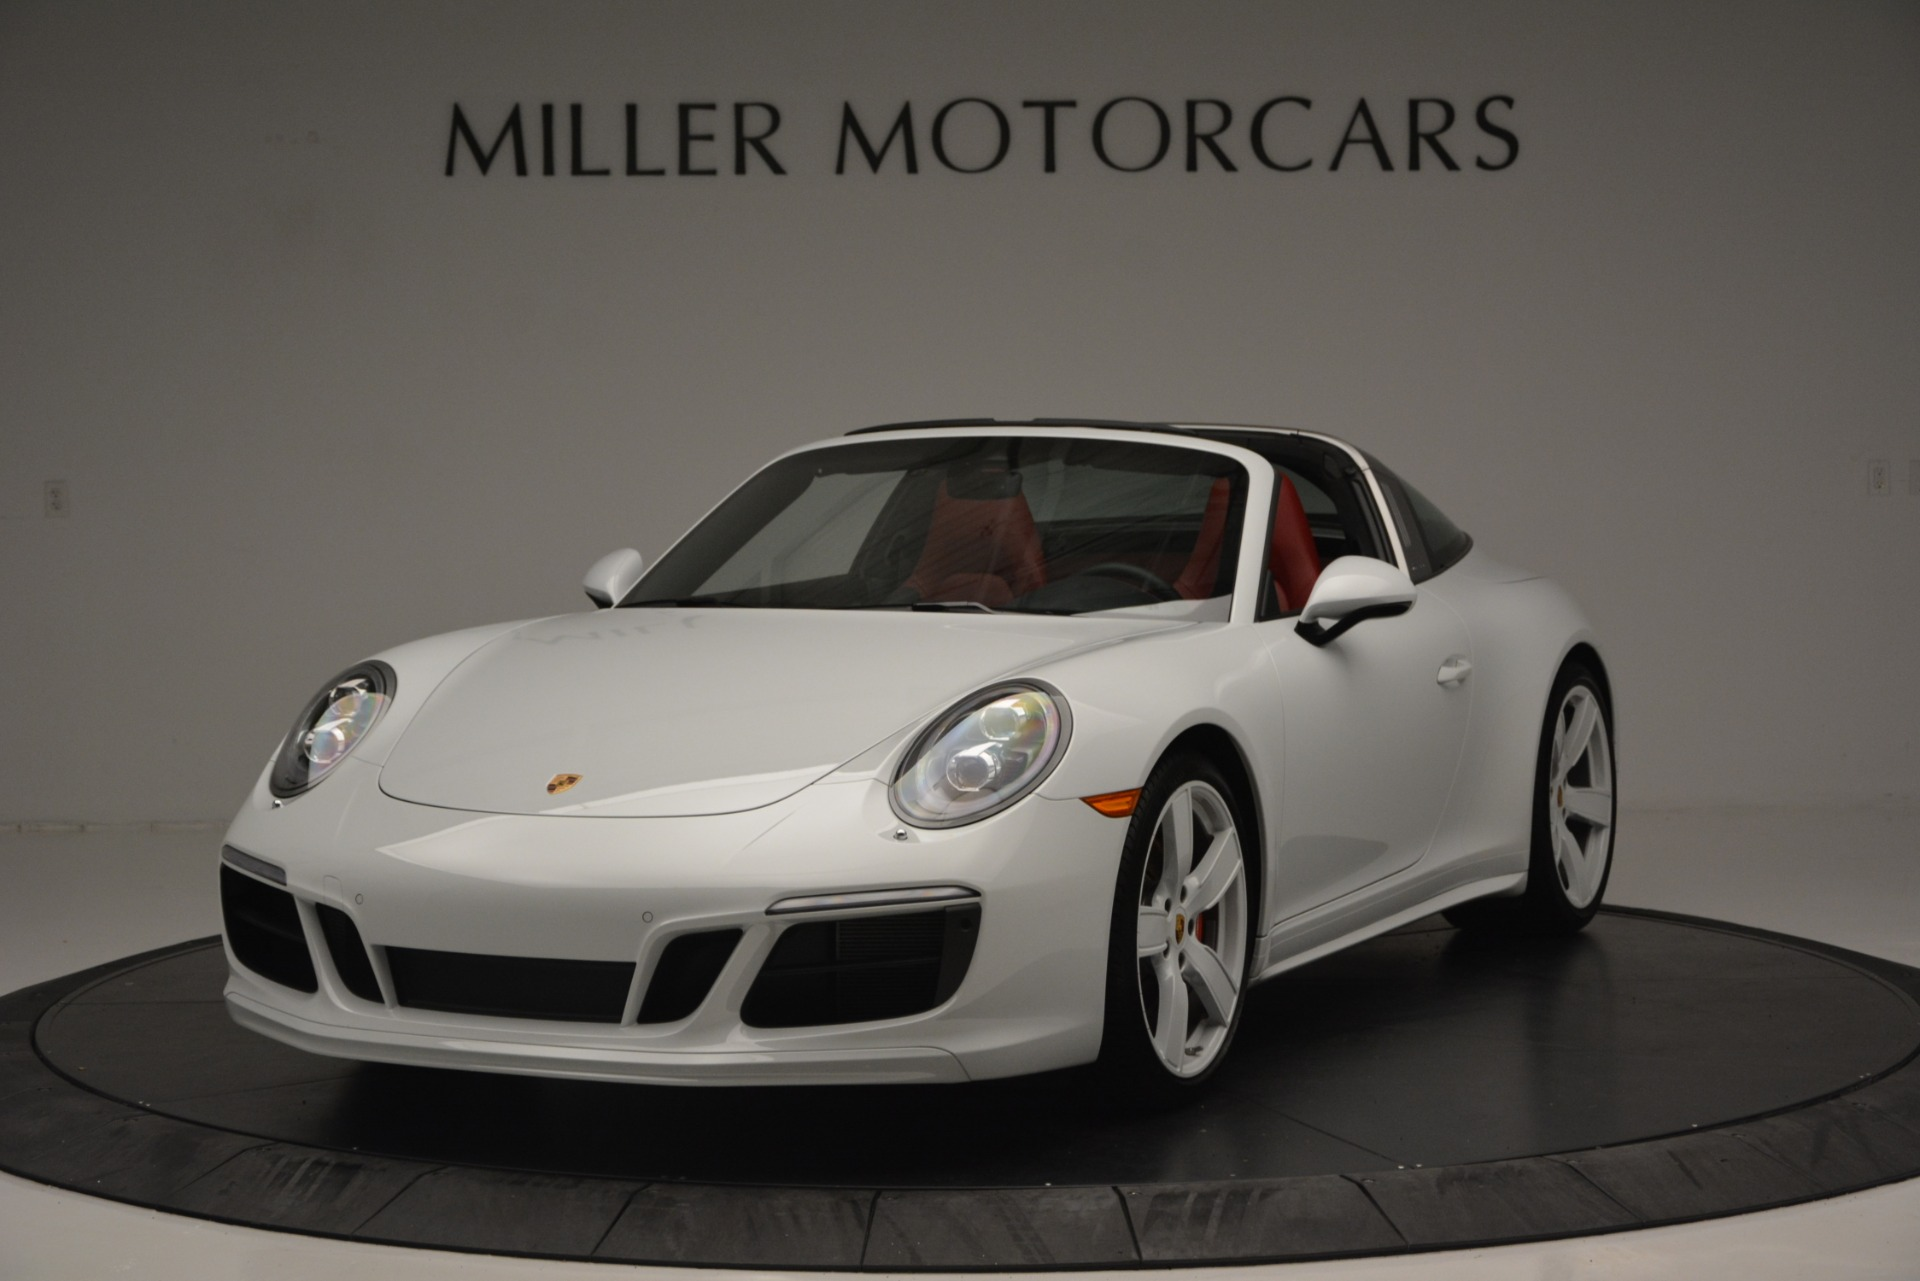 Used 2017 Porsche 911 Targa 4S for sale Sold at Alfa Romeo of Westport in Westport CT 06880 1